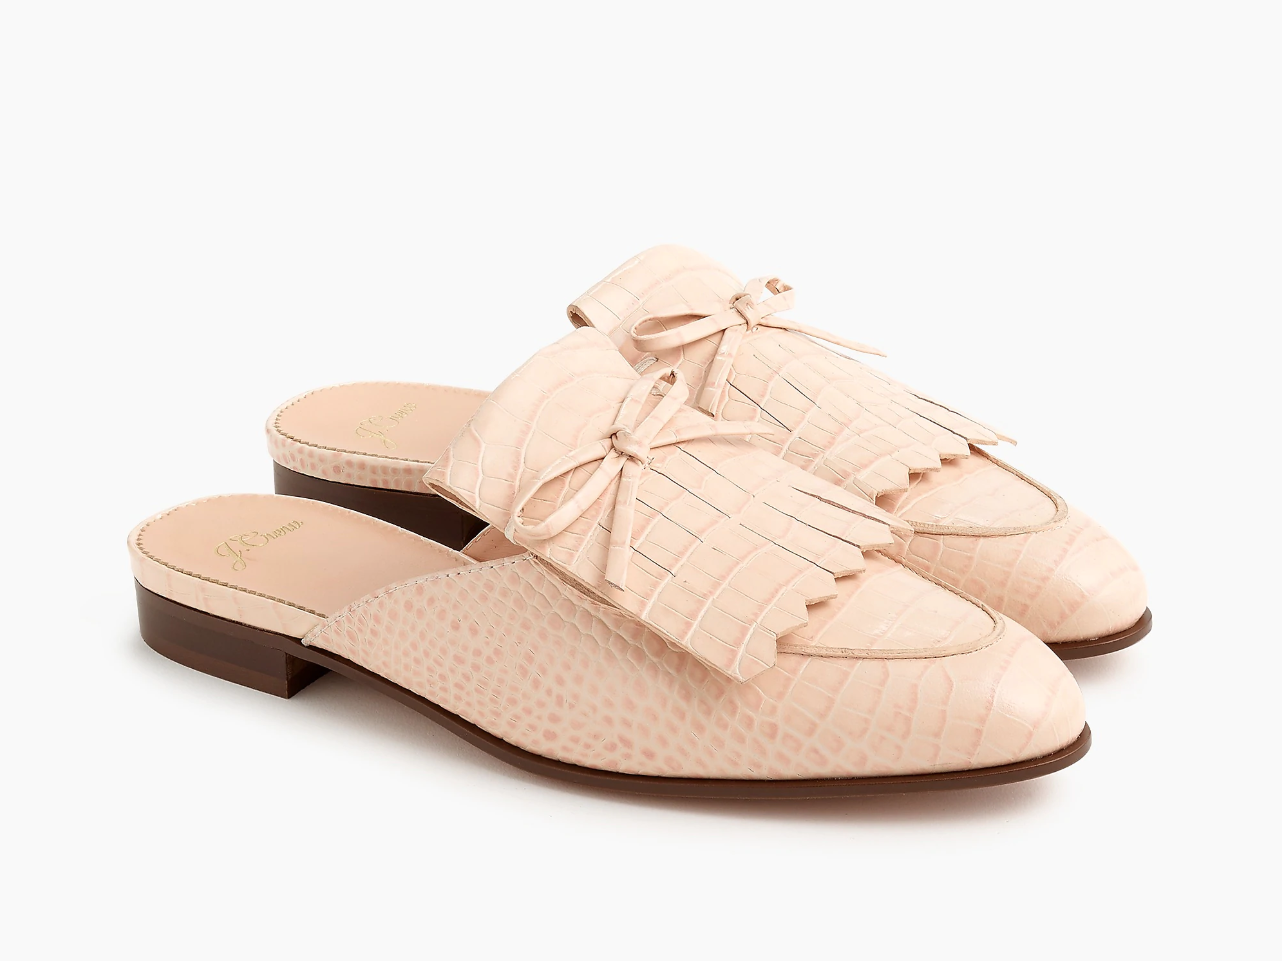 J.Crew Kiltie Academy Penny Loafer Mules